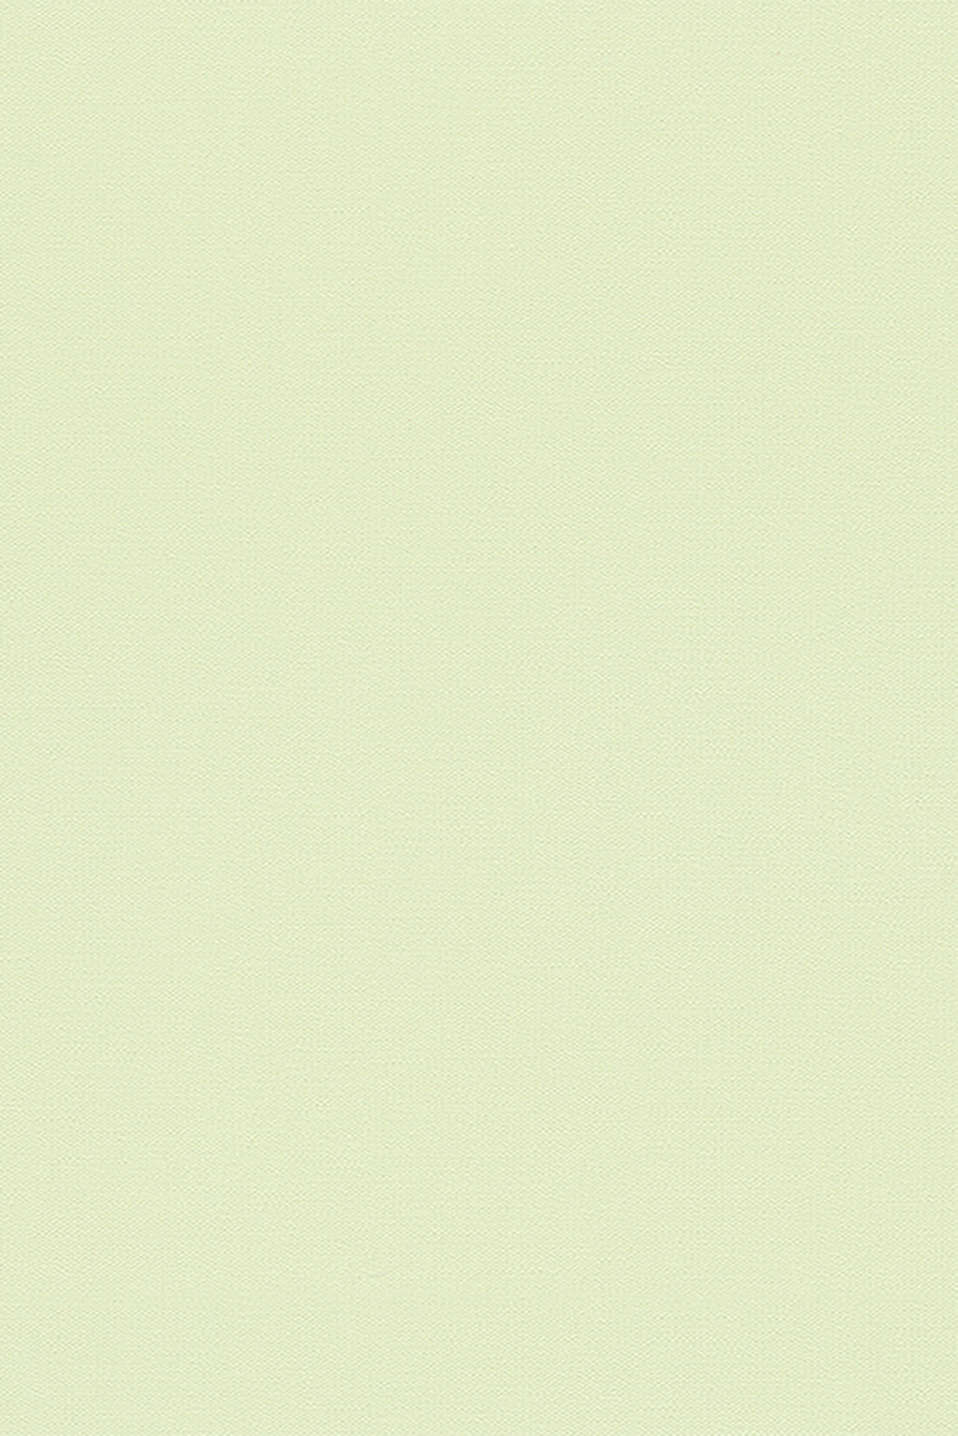 Esprit - Papel pintado infantil Jungle Plain